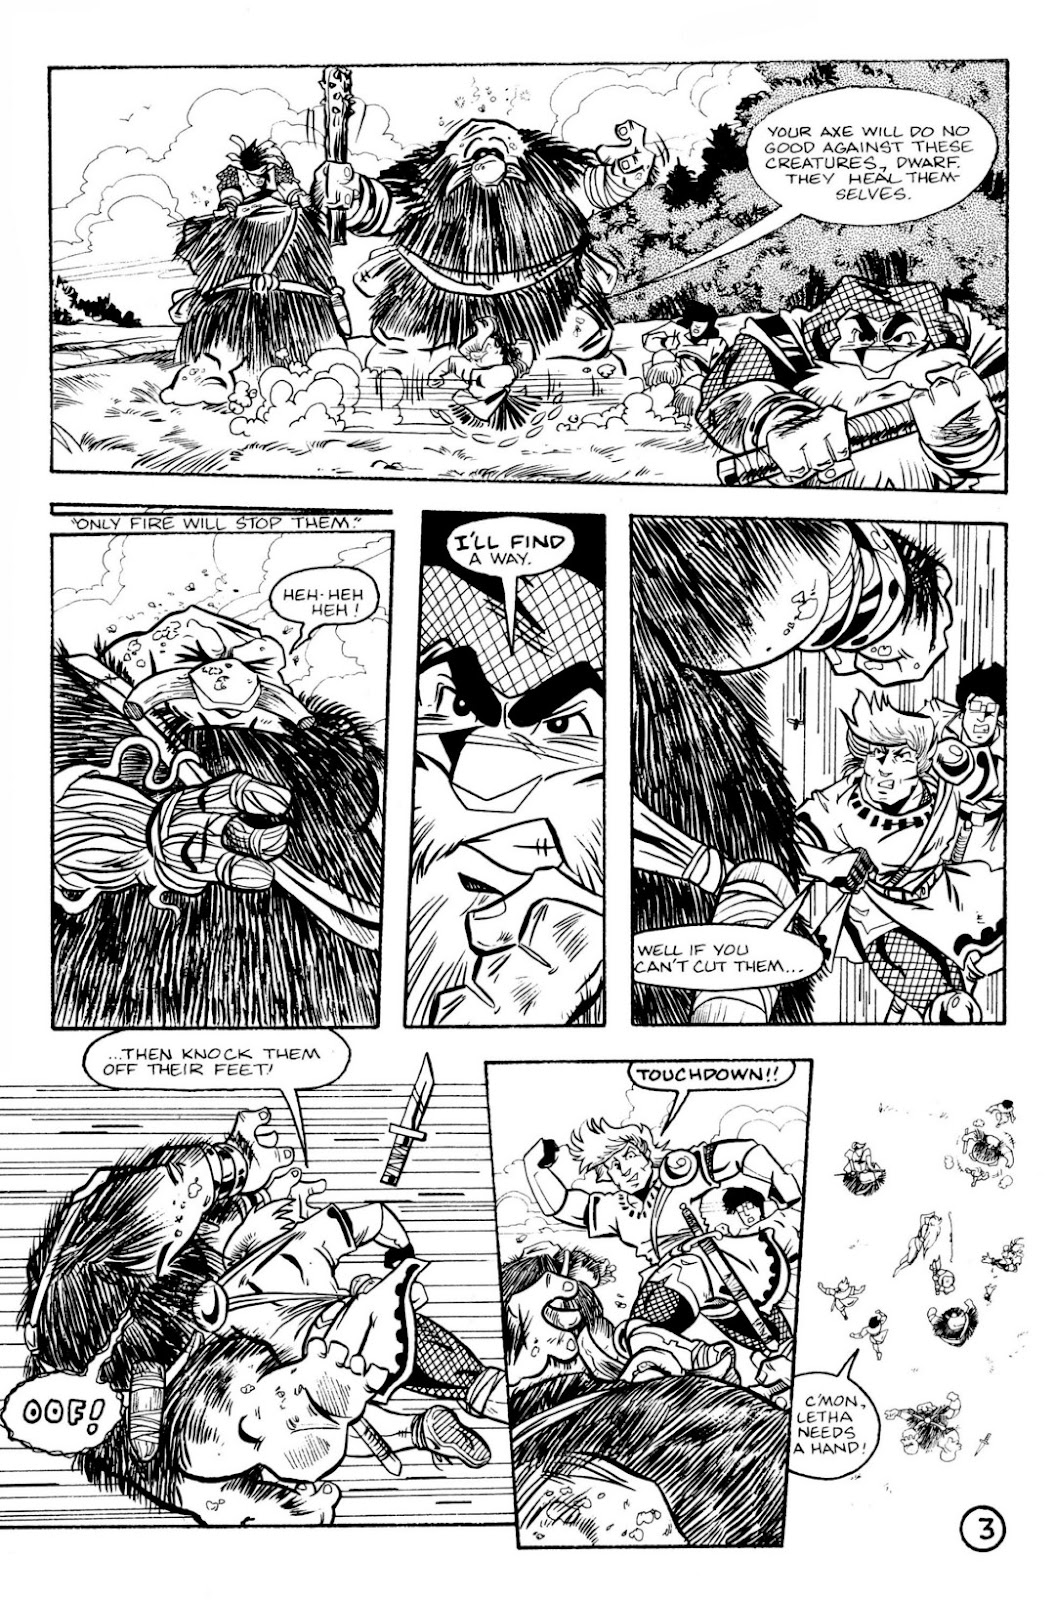 The Realm (1986) issue 8 - Page 5